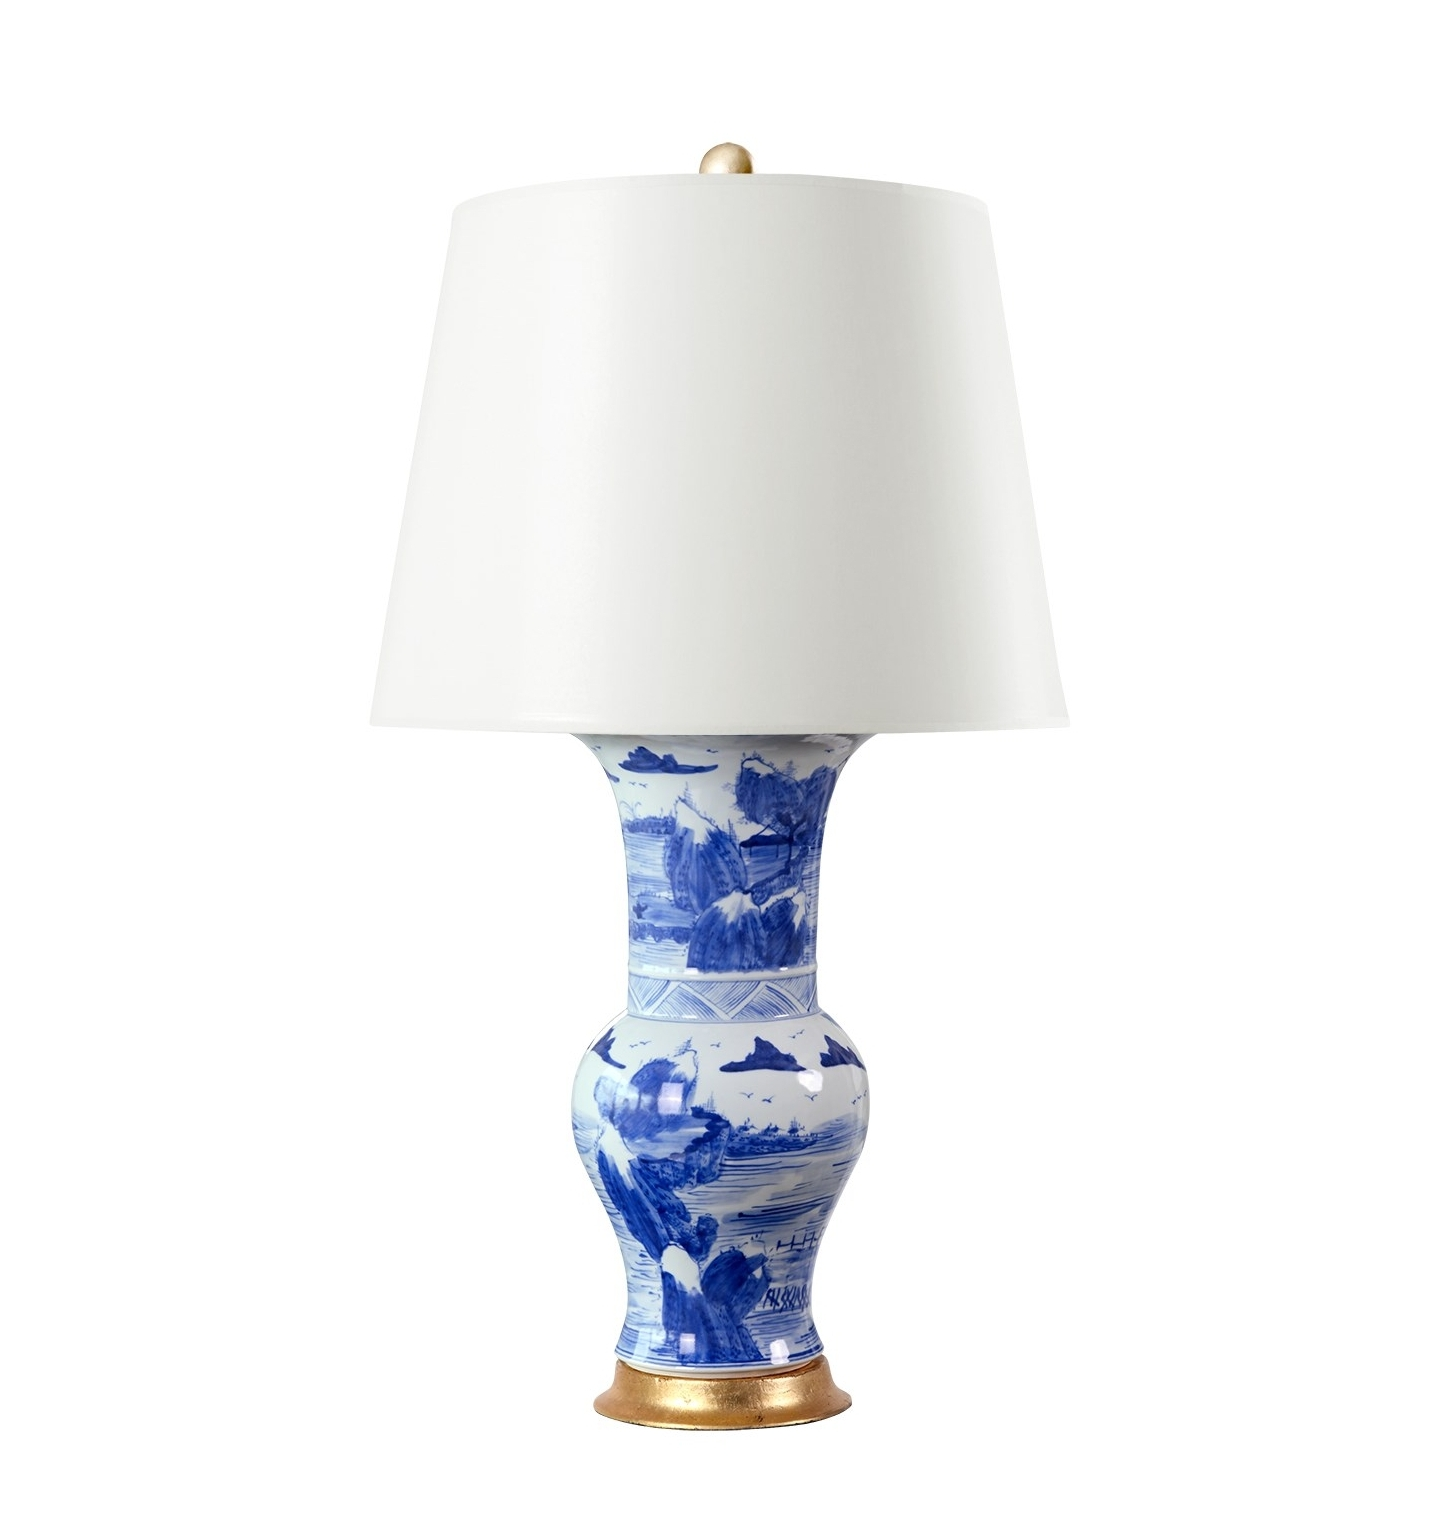 Rooms Gardens Blue White Hand Painted Porcelain Lamp